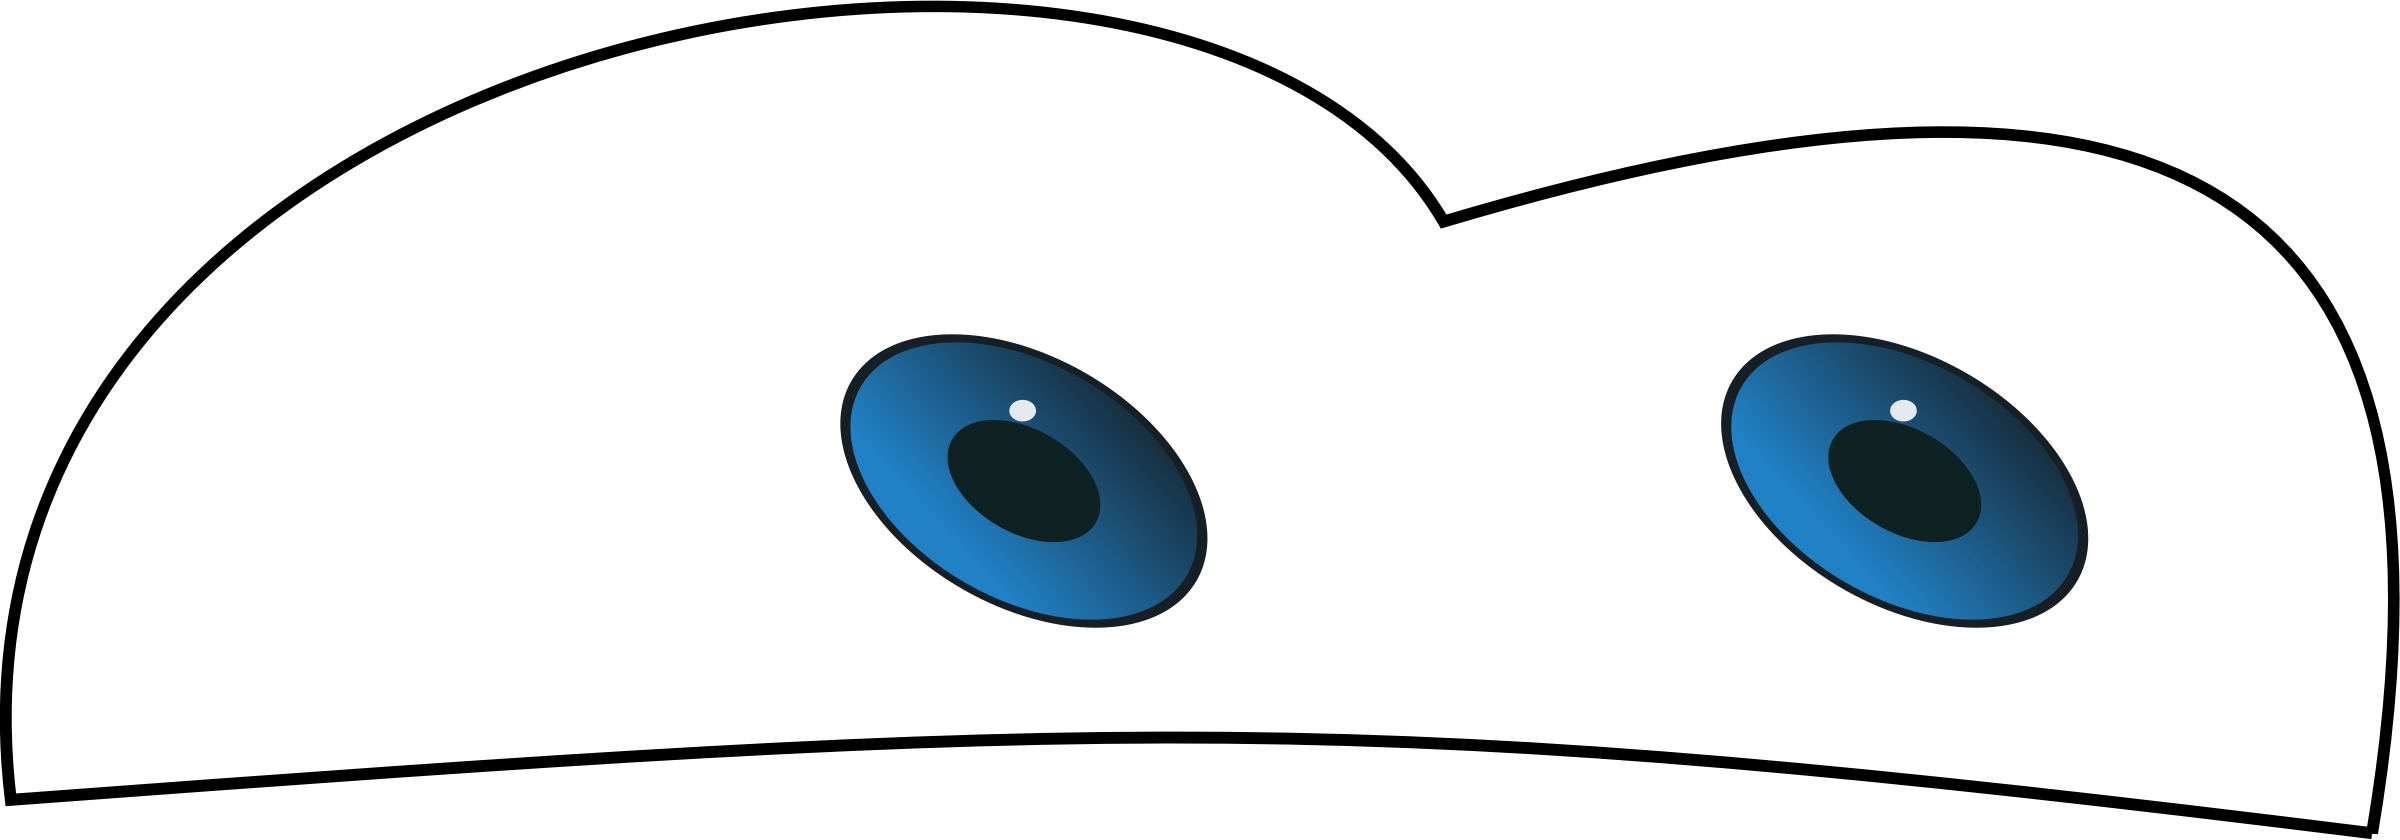 Car windshield clipart png black and white car eyes by @gramic, Car eyes like the one from the movie cars., on ... png black and white